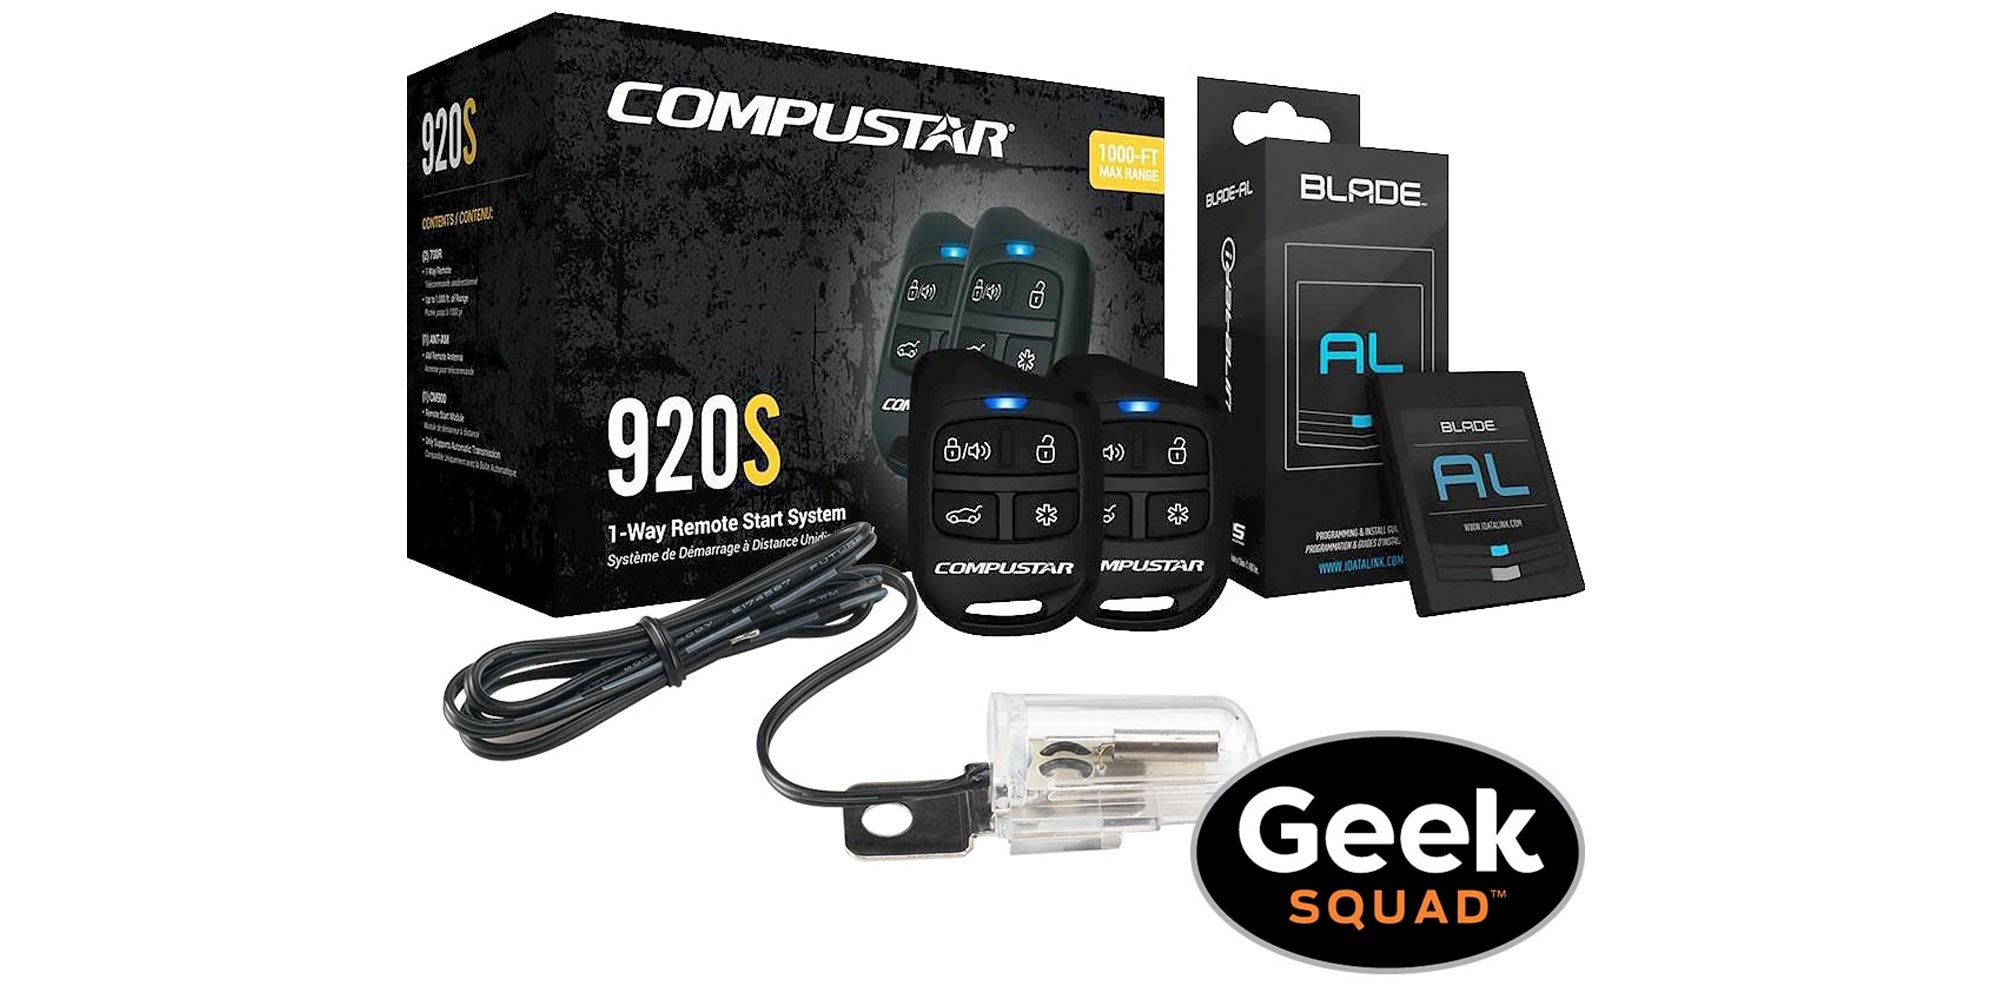 Never walk out to a cold (or hot) car again w/ this remote start kit for $210 installed